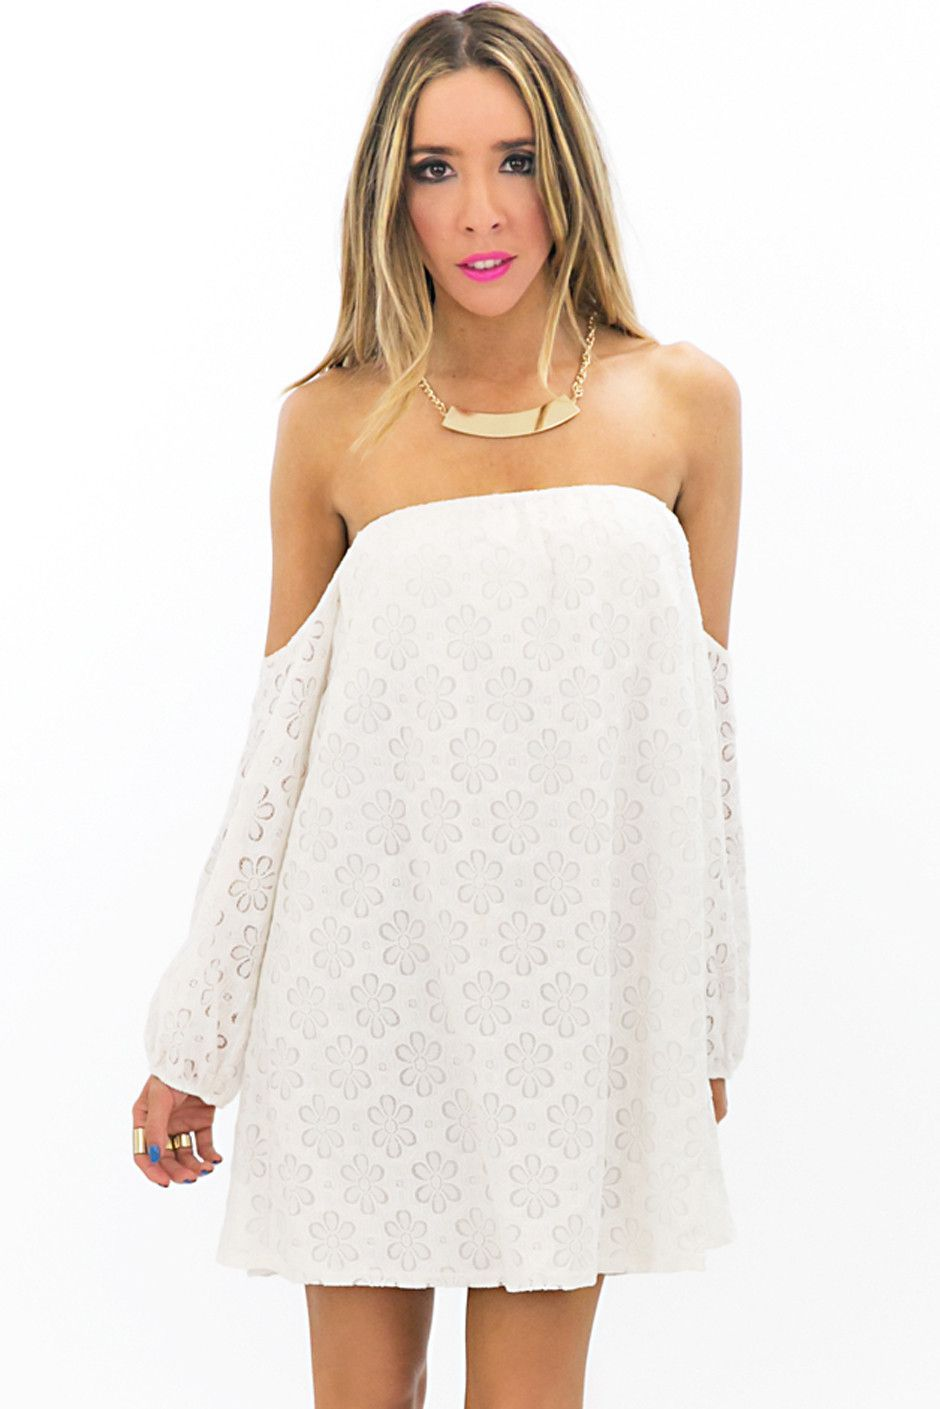 White Off the shoulder bell sleeve dress